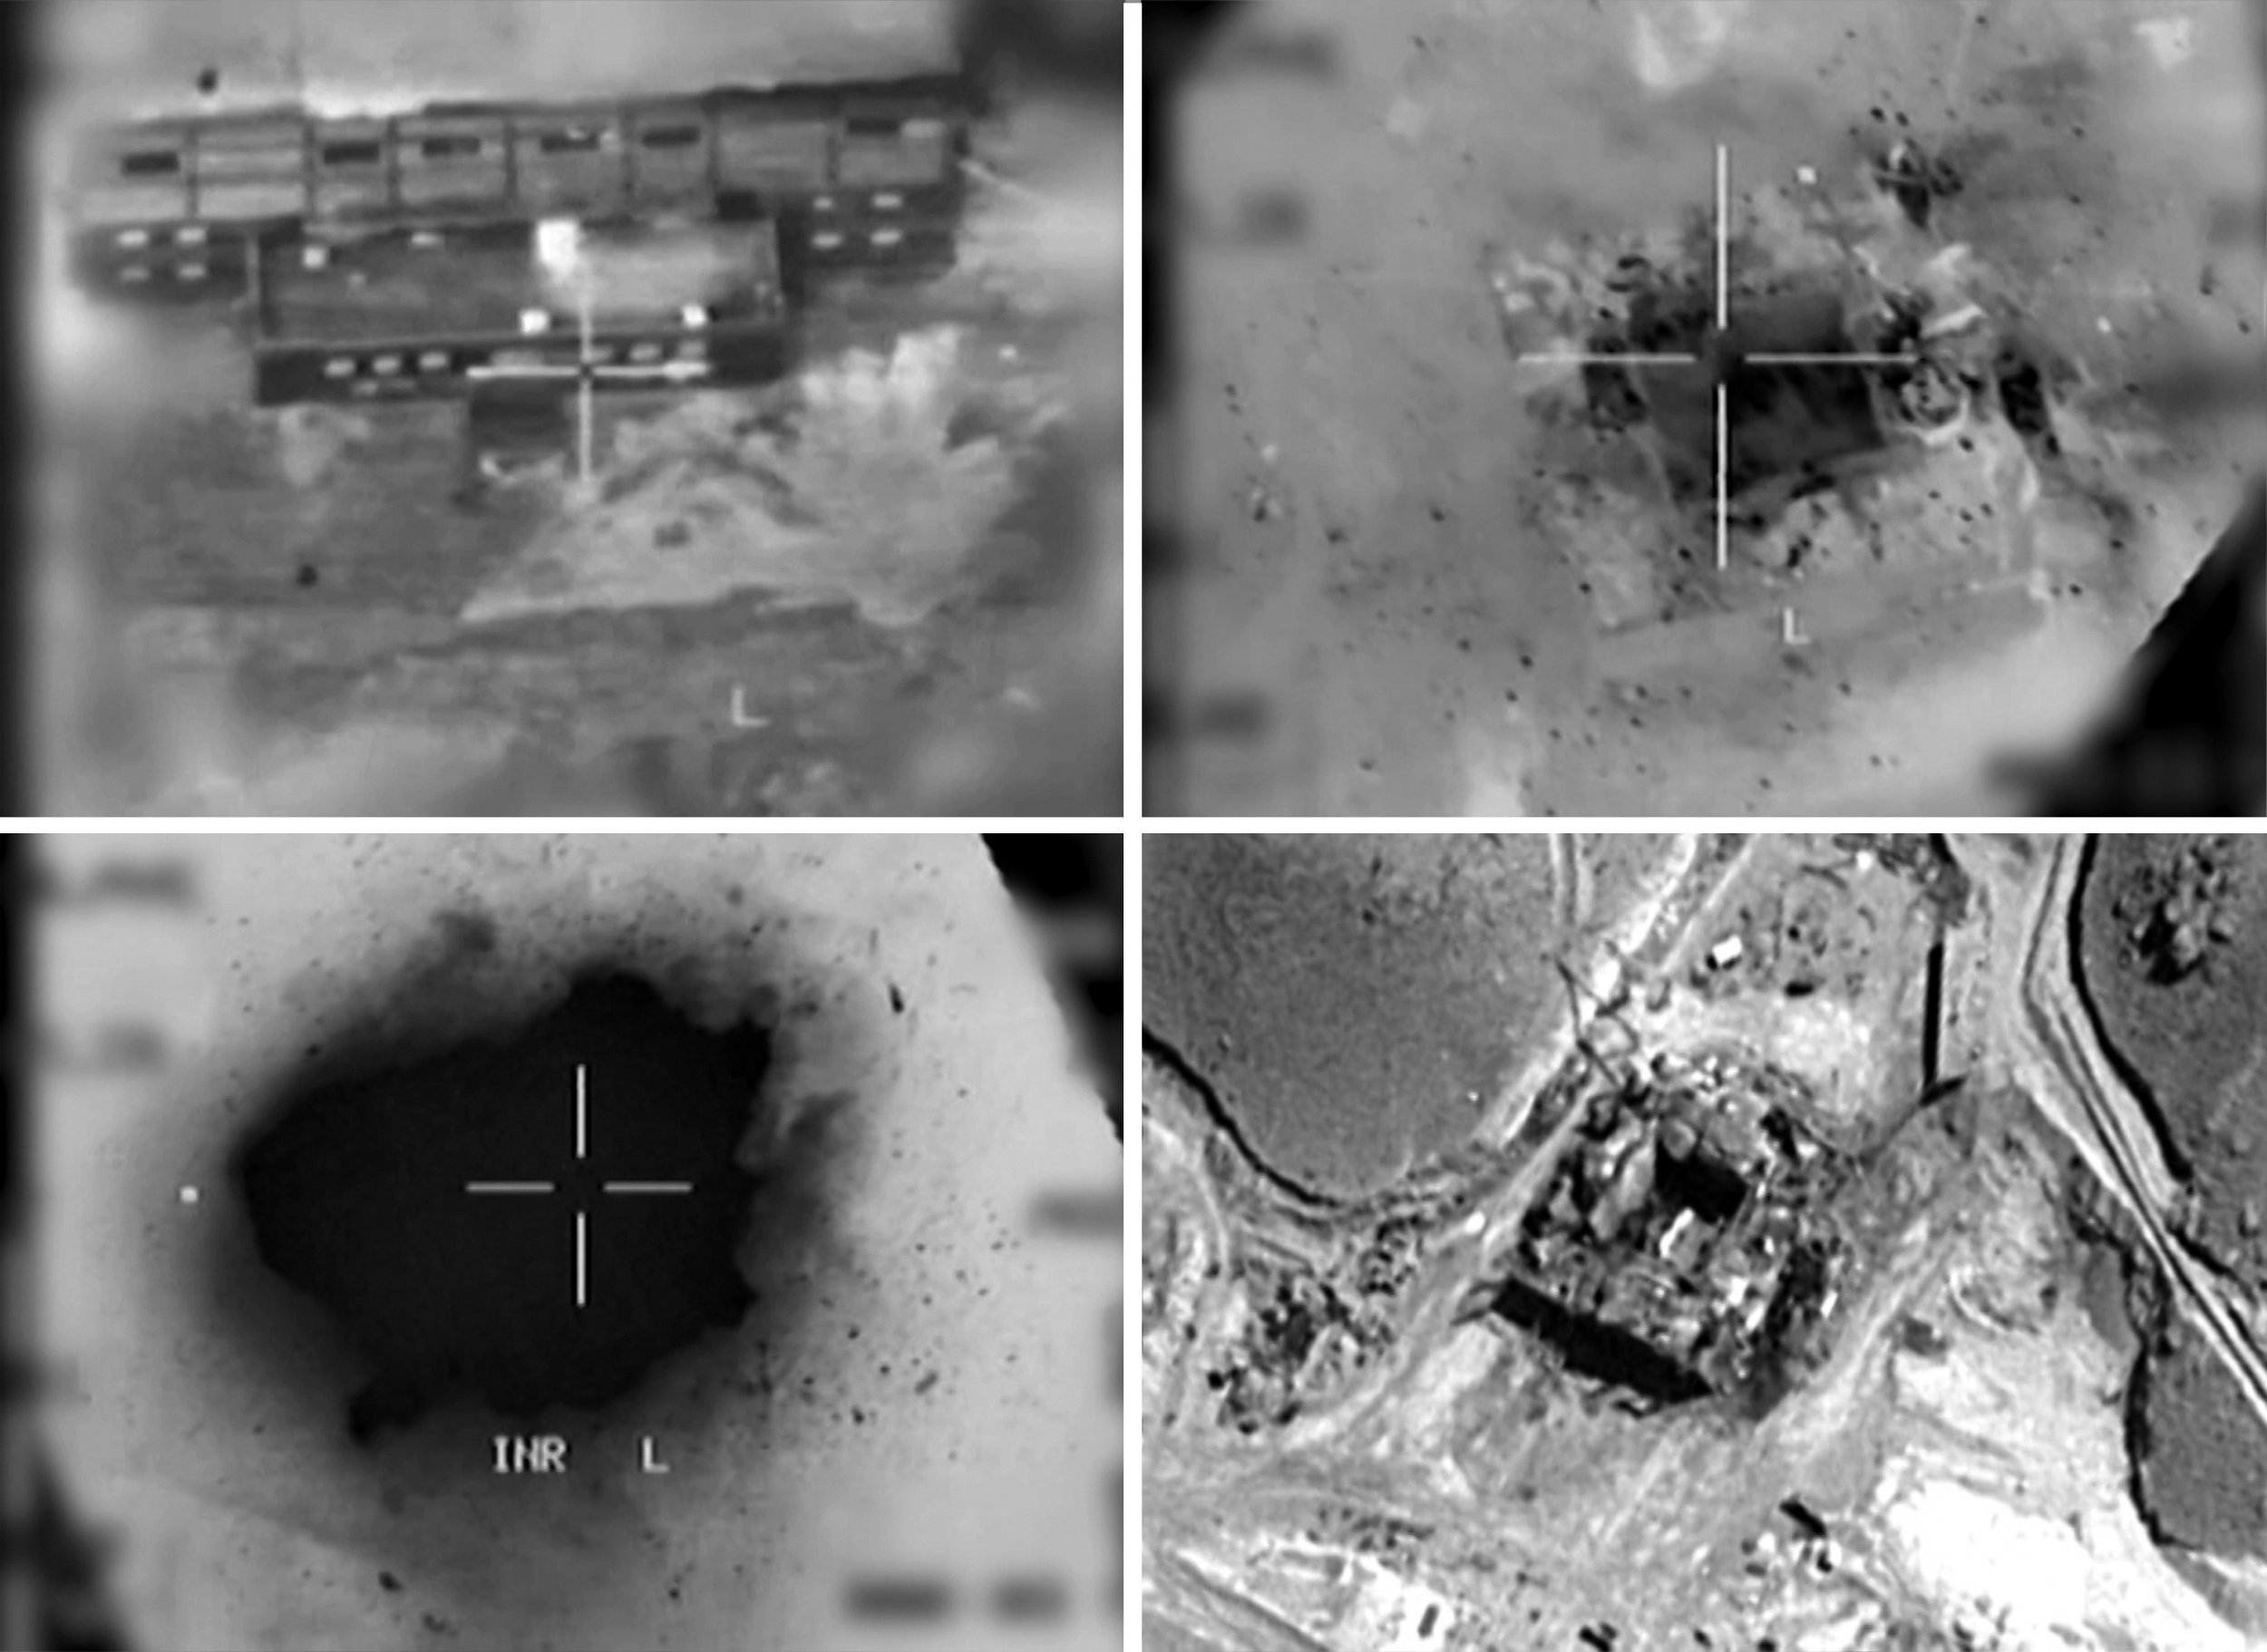 Operation Orchard Israel airstrike Syria 2007